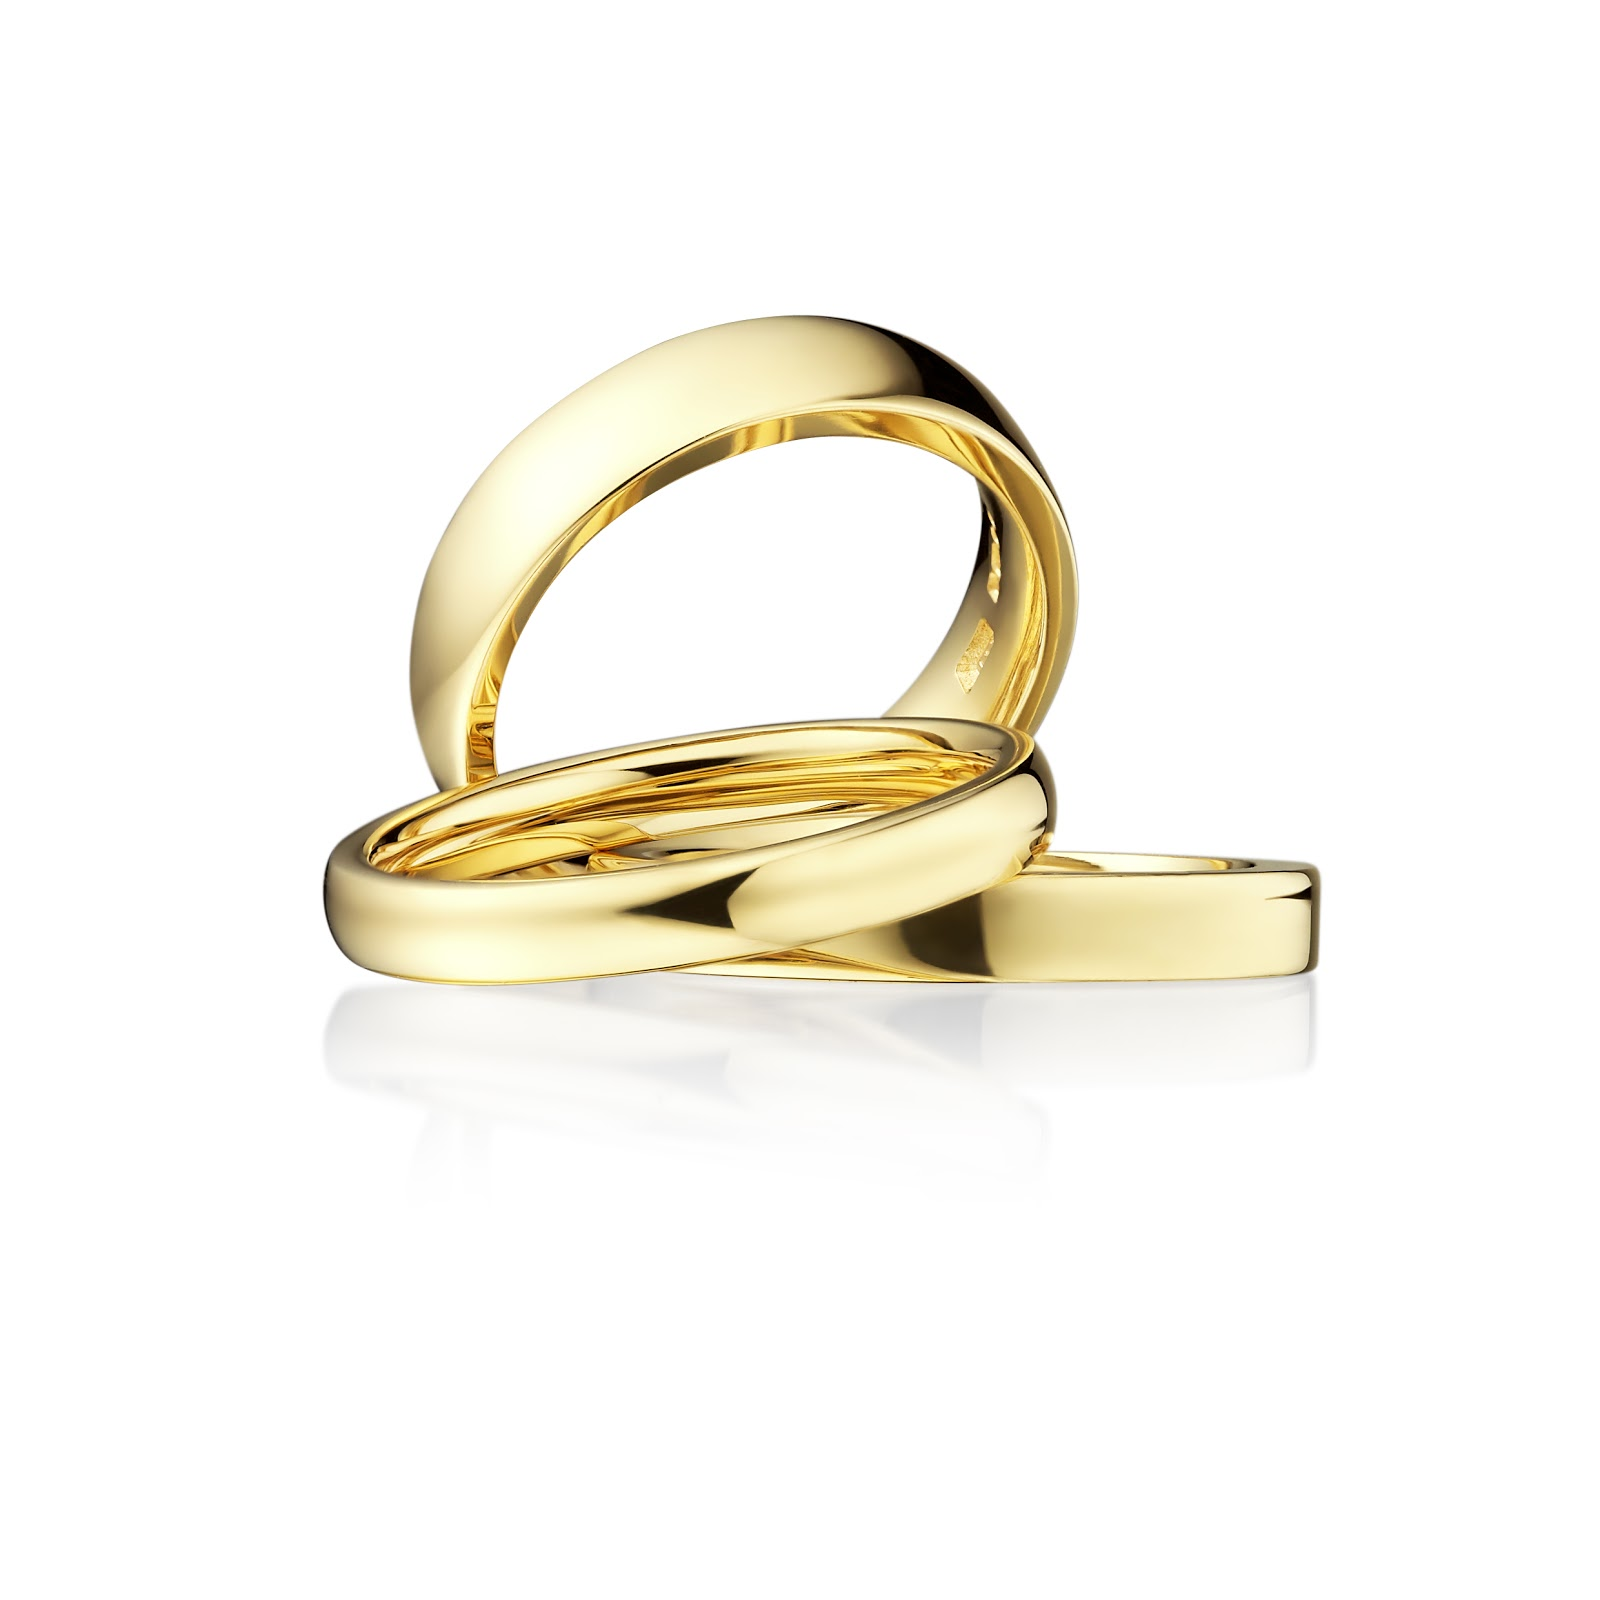 Gold Purchased For Custommade Engagement Rings Or Wedding Bands: Golden Wedding Rings Names At Websimilar.org